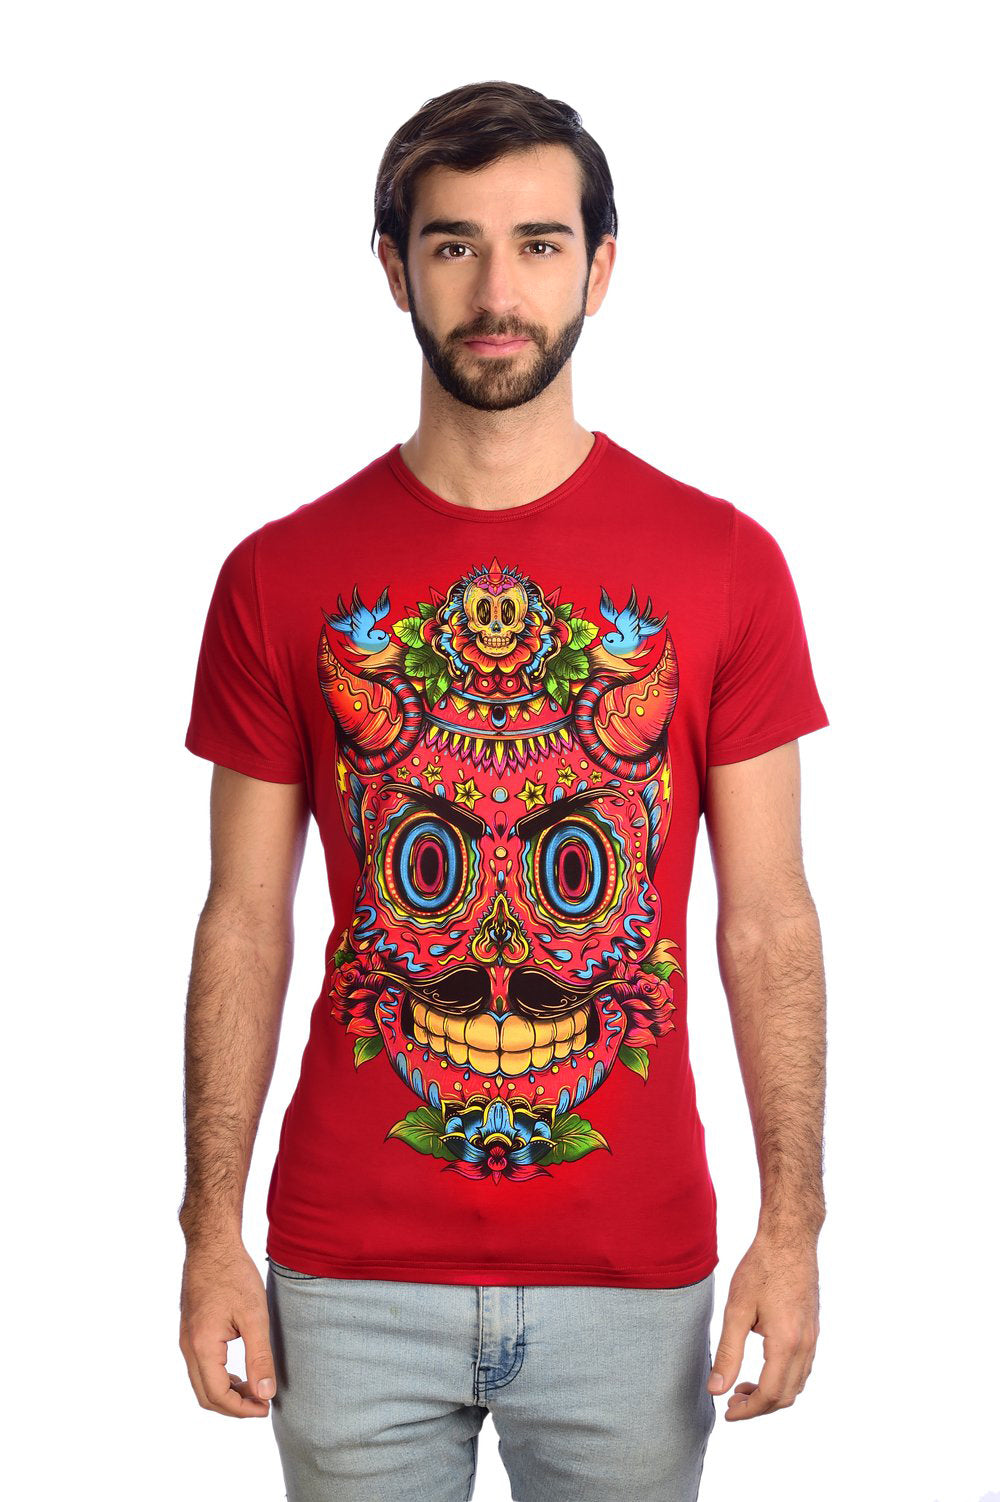 DIABLITO 2 - T-Shirt Men - ¡Ay Güey! USA